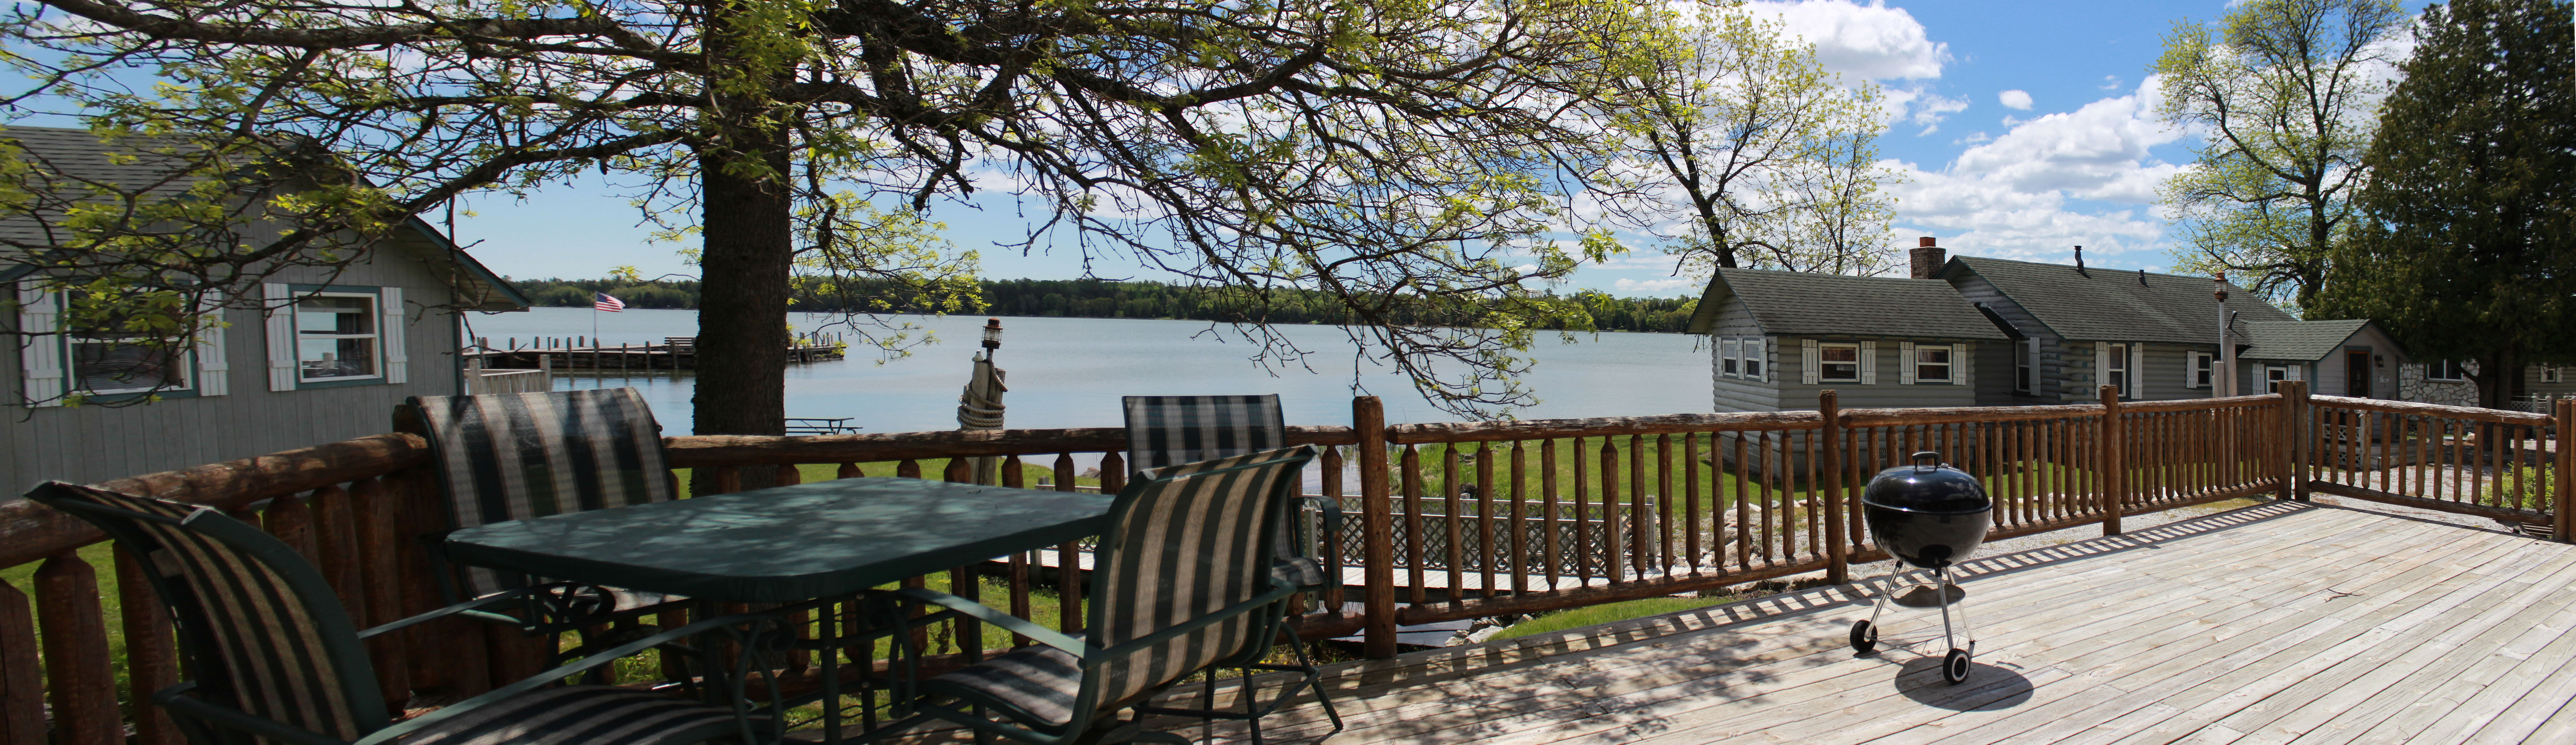 cedarville michigan cabin rental